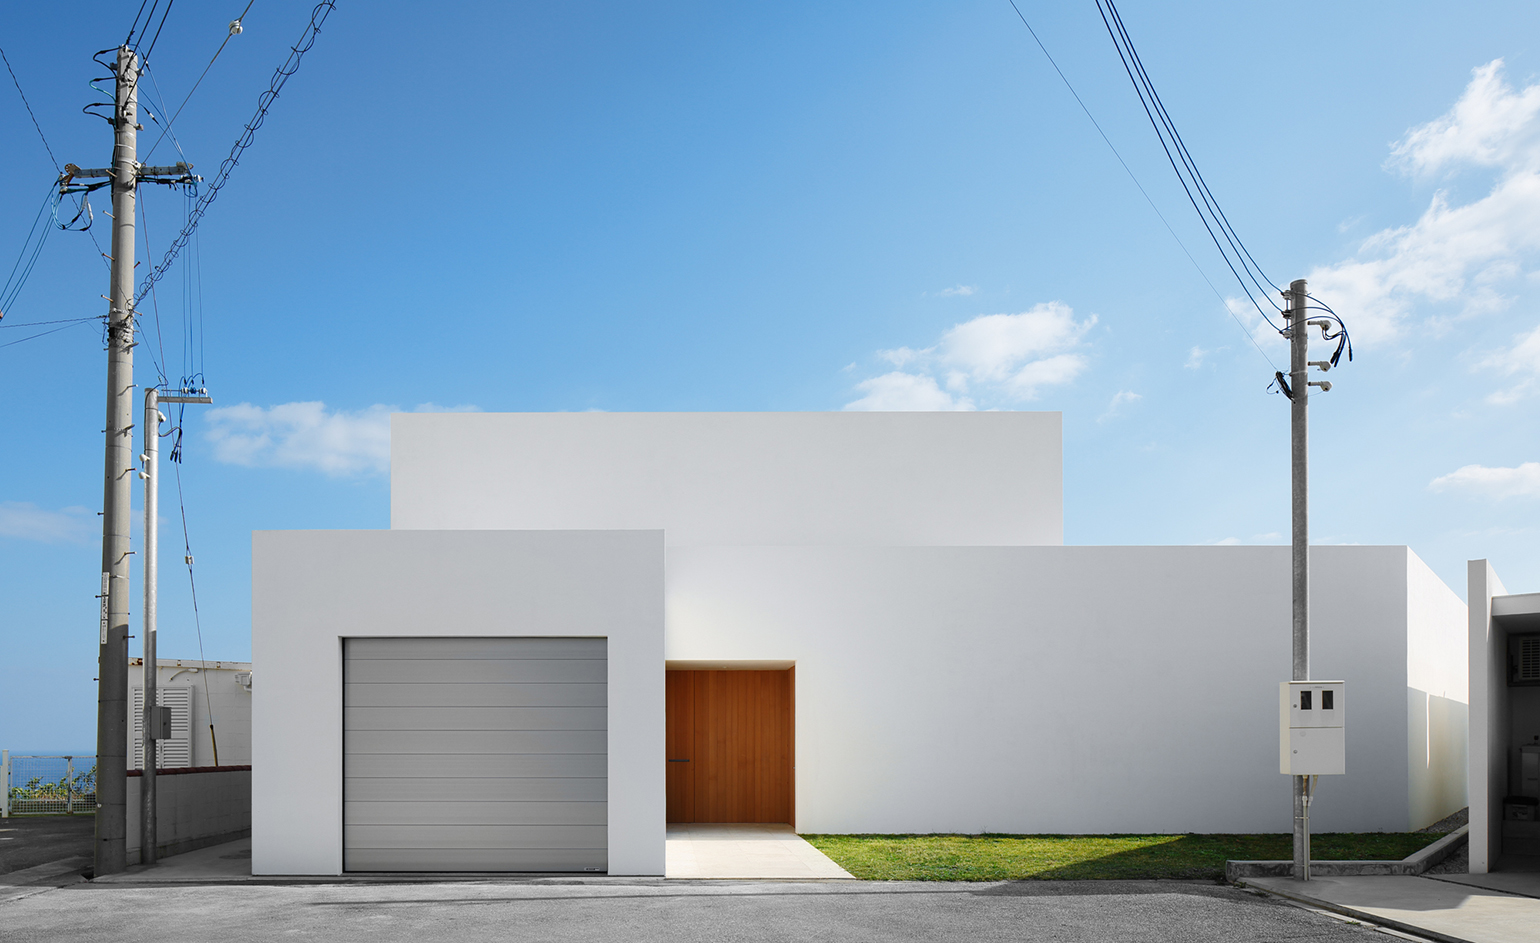 John pawson unveils minimalist japanese home in okinawa for Japan minimalist home design